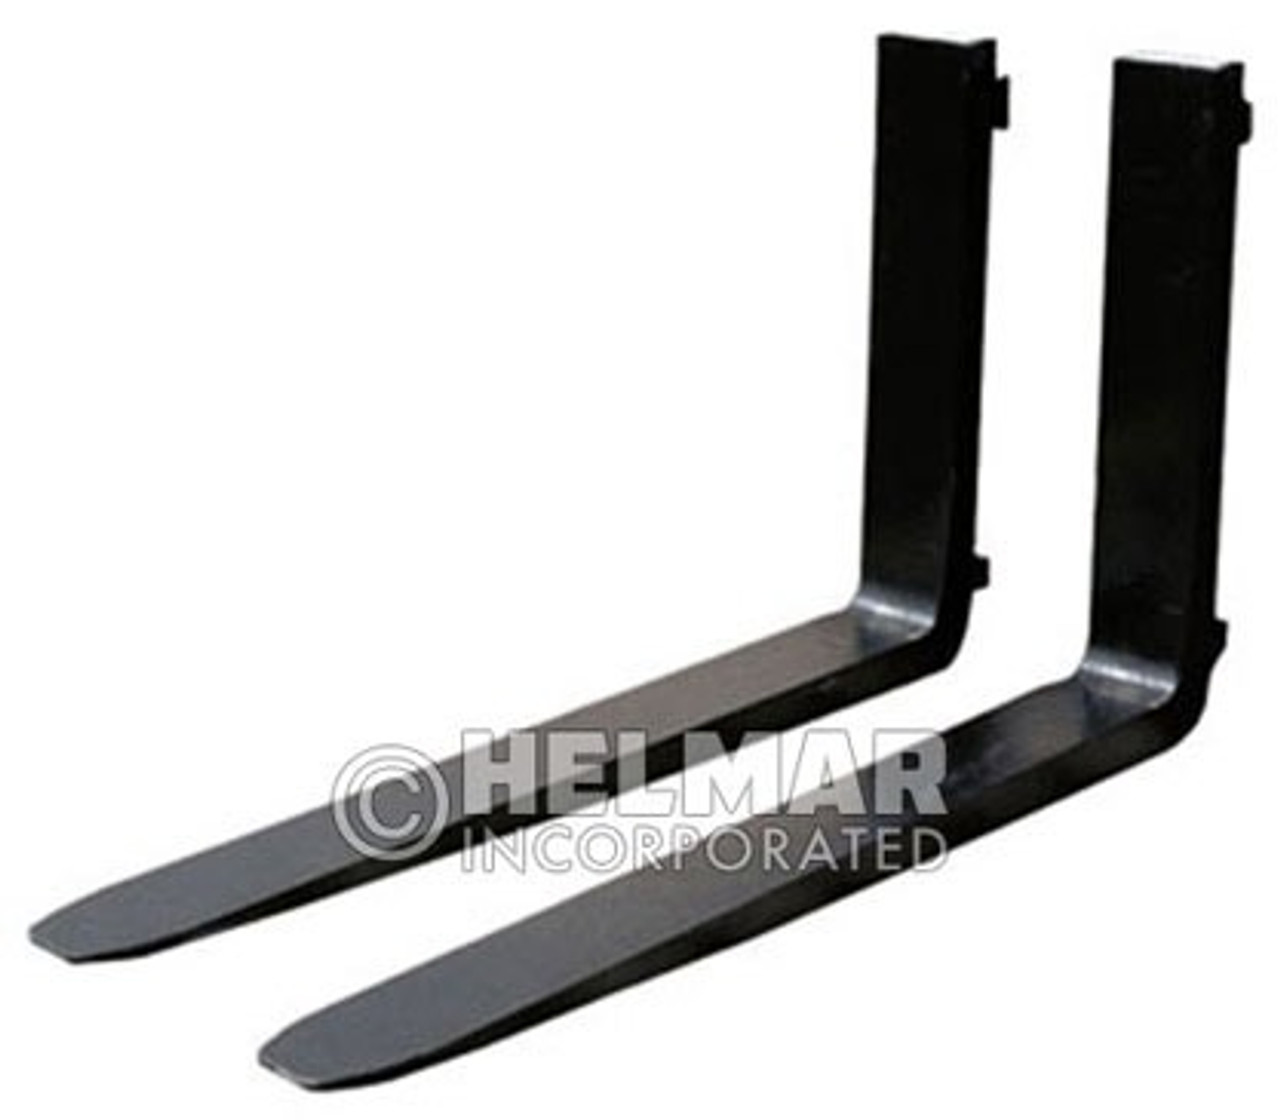 FORK-4118 Class II Full Tapered Polished Liftruck Forks 1 3/4 x 5 x 48, 137 Lbs.